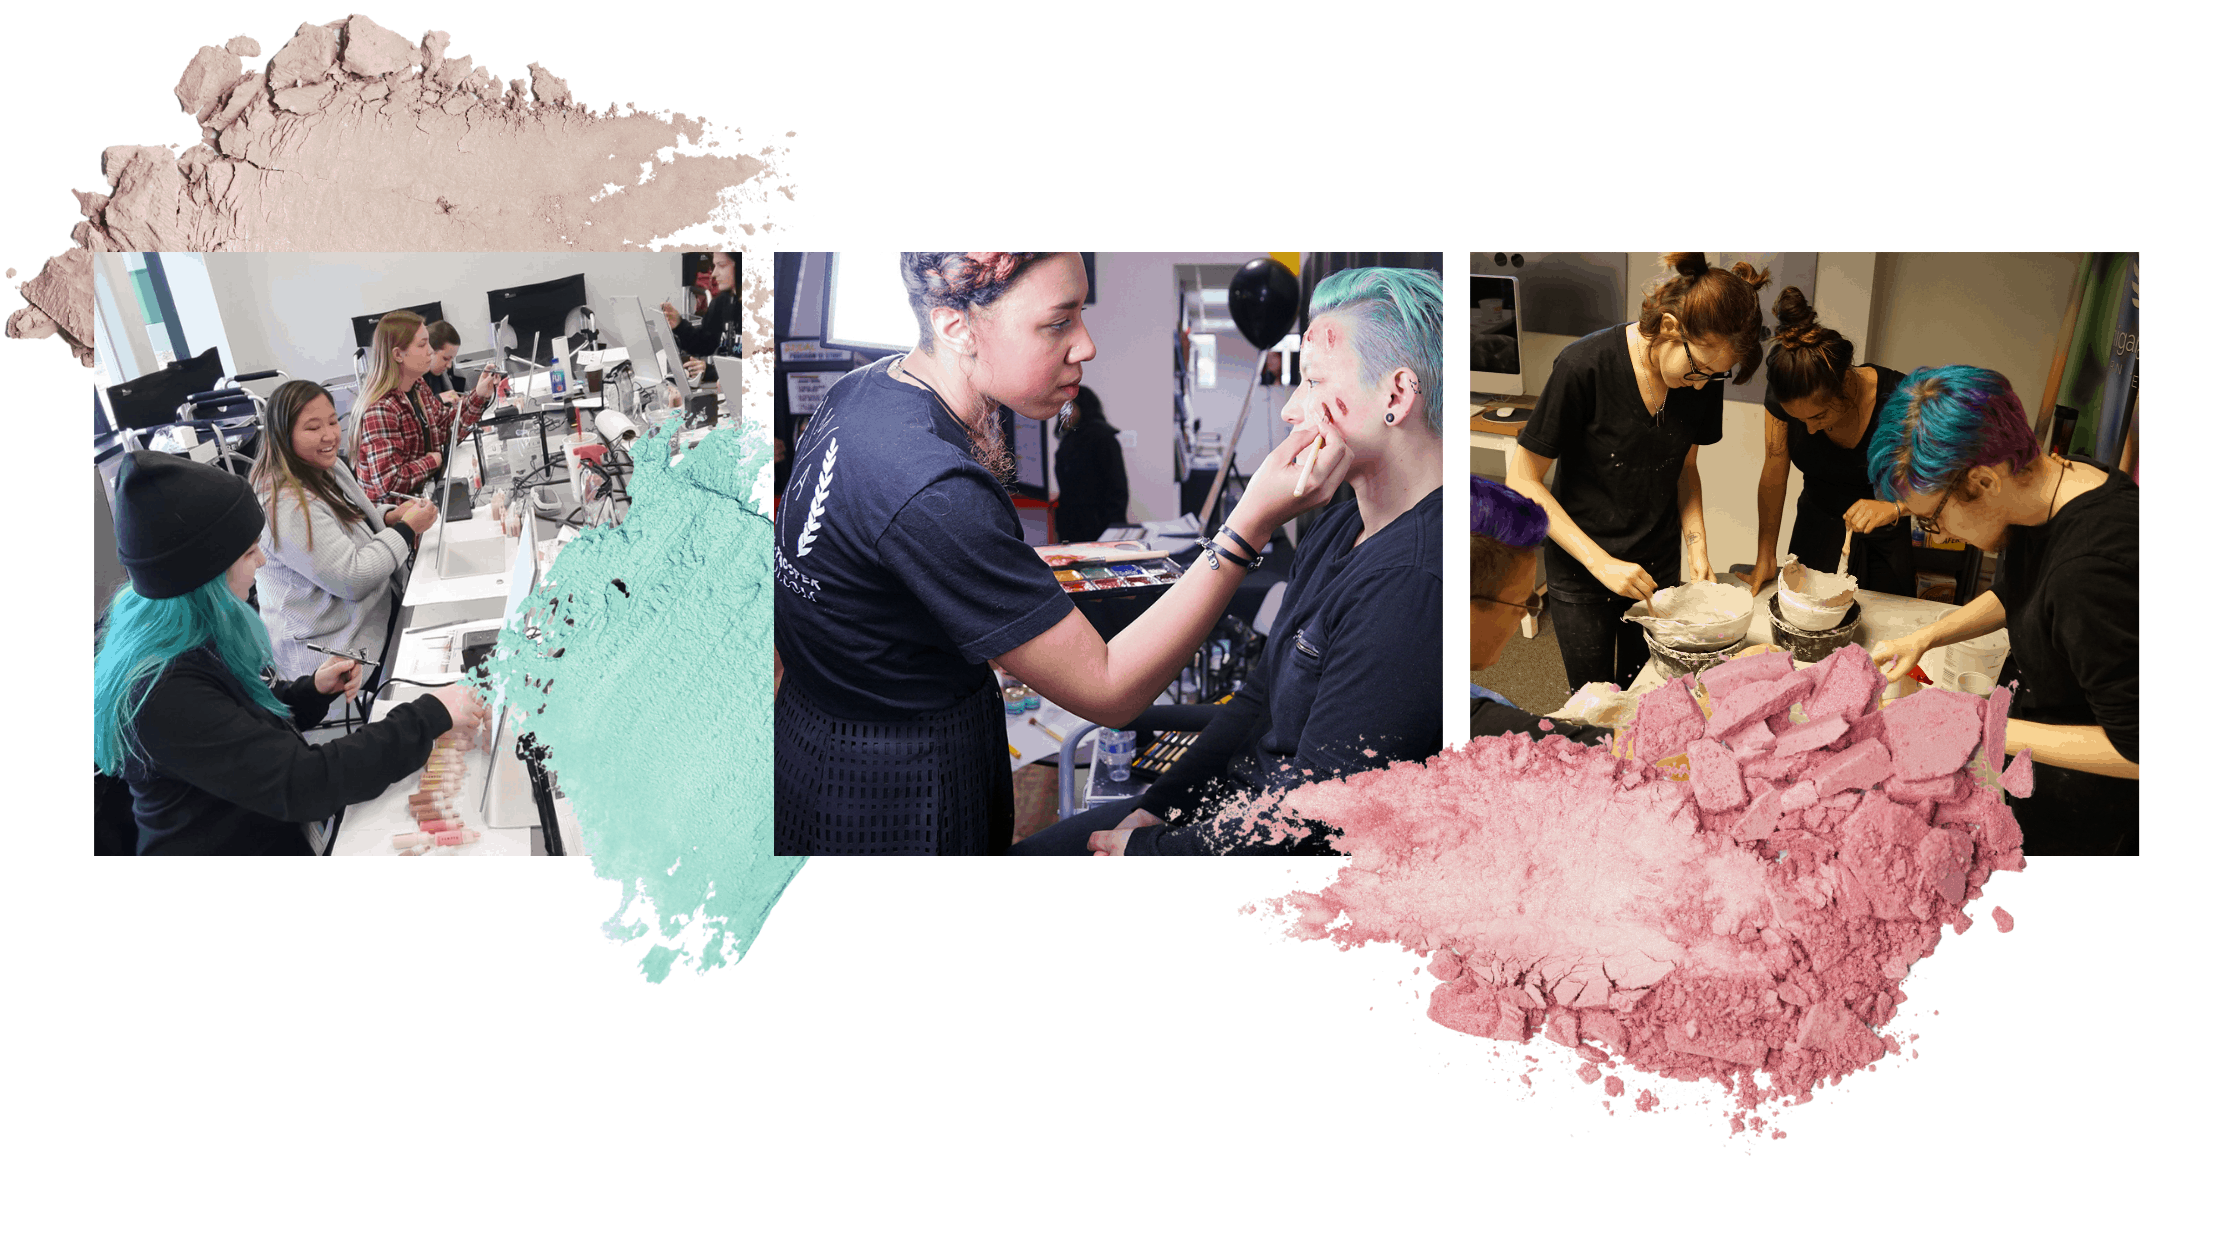 Students practicing during makeup classes at Multimedia Makeup Academy.